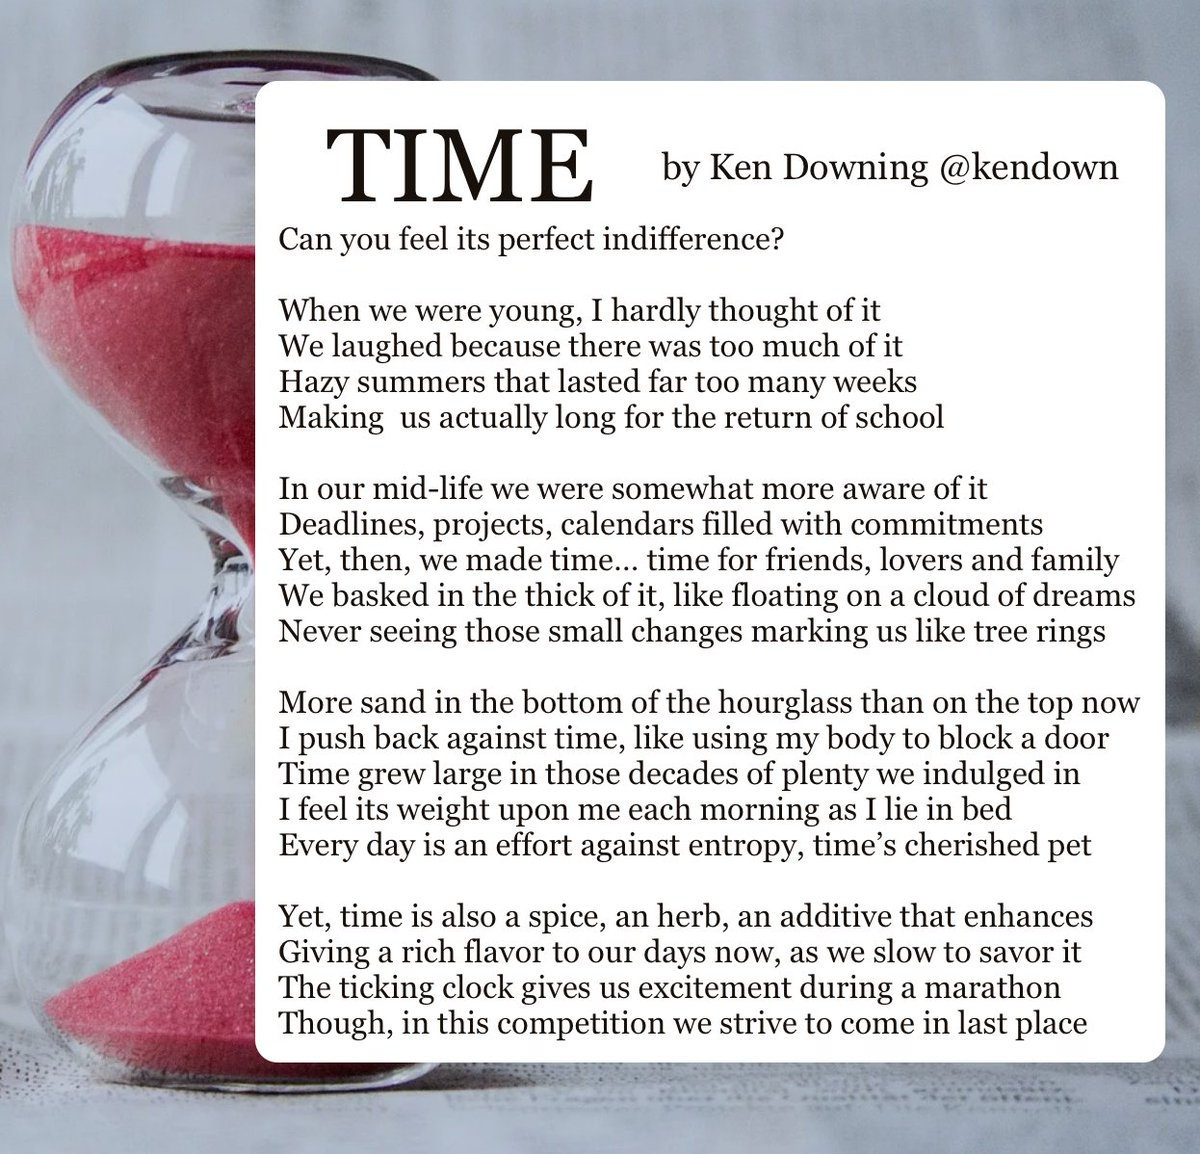 ☆ #ReadMeSpeakMe No.113 ☆ 20th September 2020 ☆   This week we are reading 'Time' by Ken Downing @kendown   Please include the #ReadMeSpeakMe hashtag in your tweet and announce the poem title and author in your recording. DM @ReadMeSpeakMe for the text version. https://t.co/wjXTwCJLWG